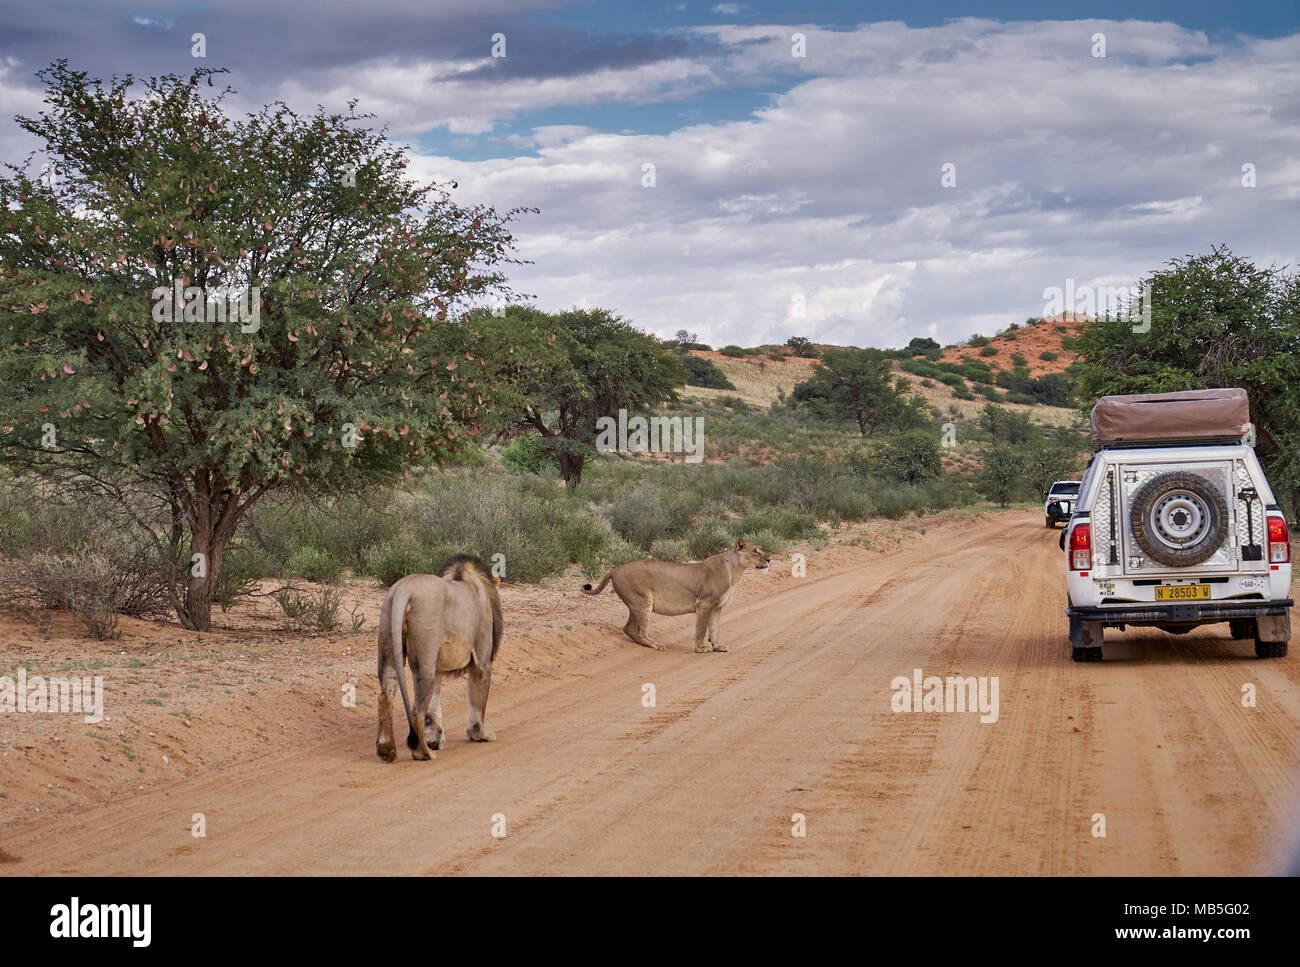 Self Driving Car Stock Photos & Self Driving Car Stock Images - Alamy